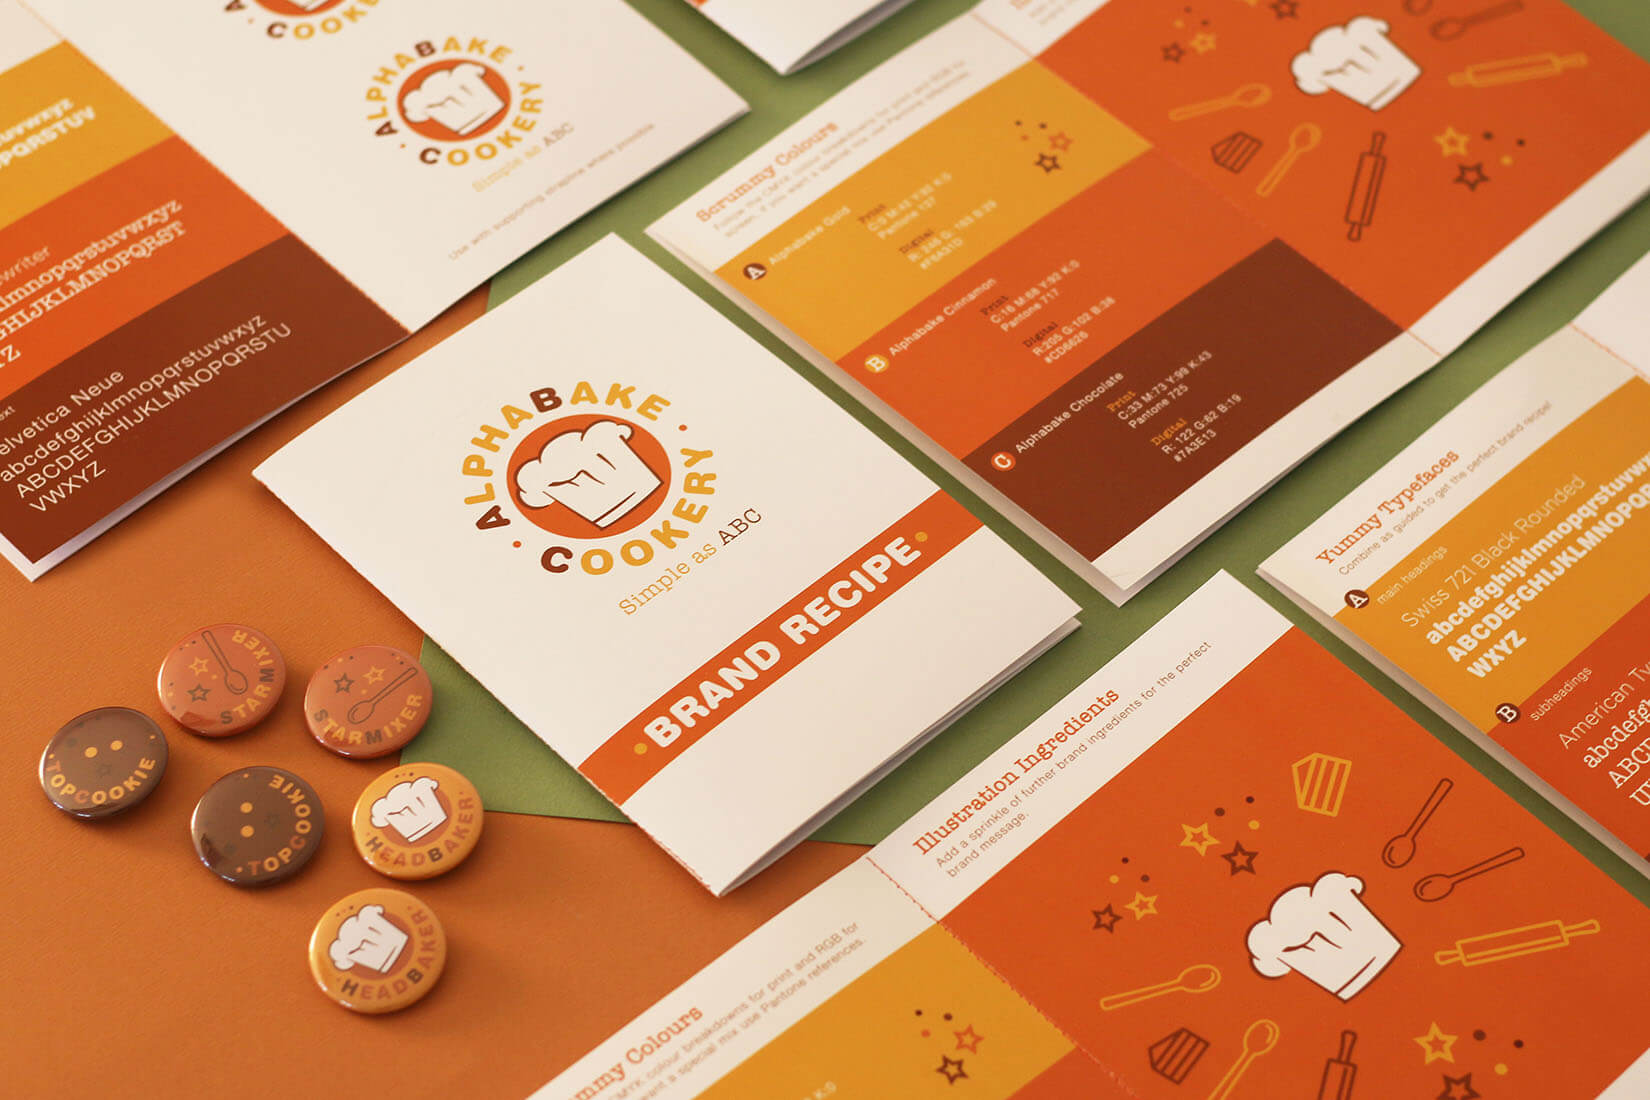 Alphabake visual identity elements